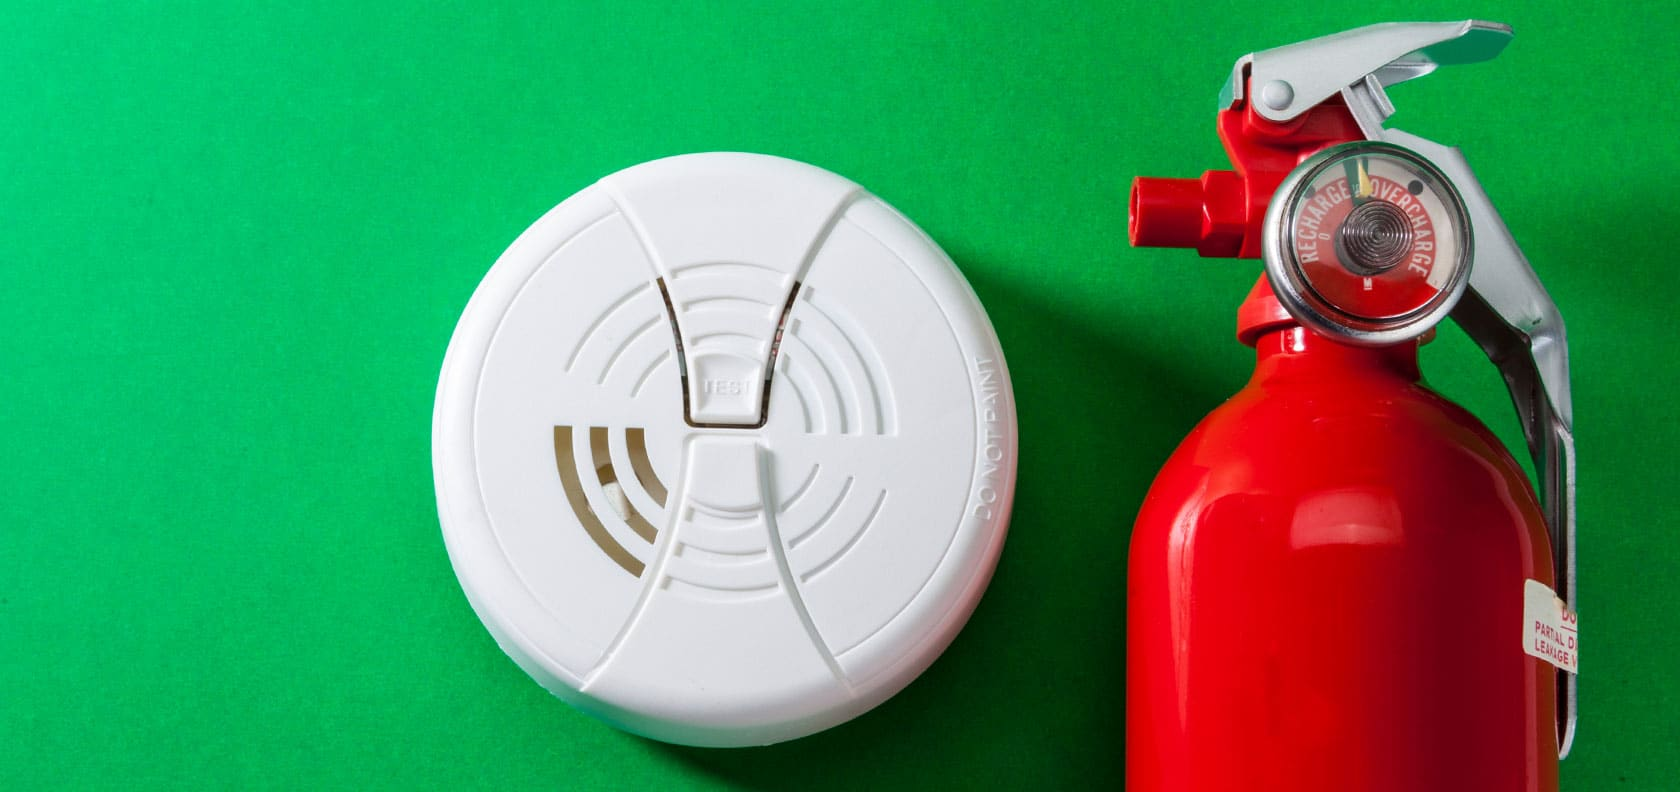 Fire alarm and fire extinguisher.